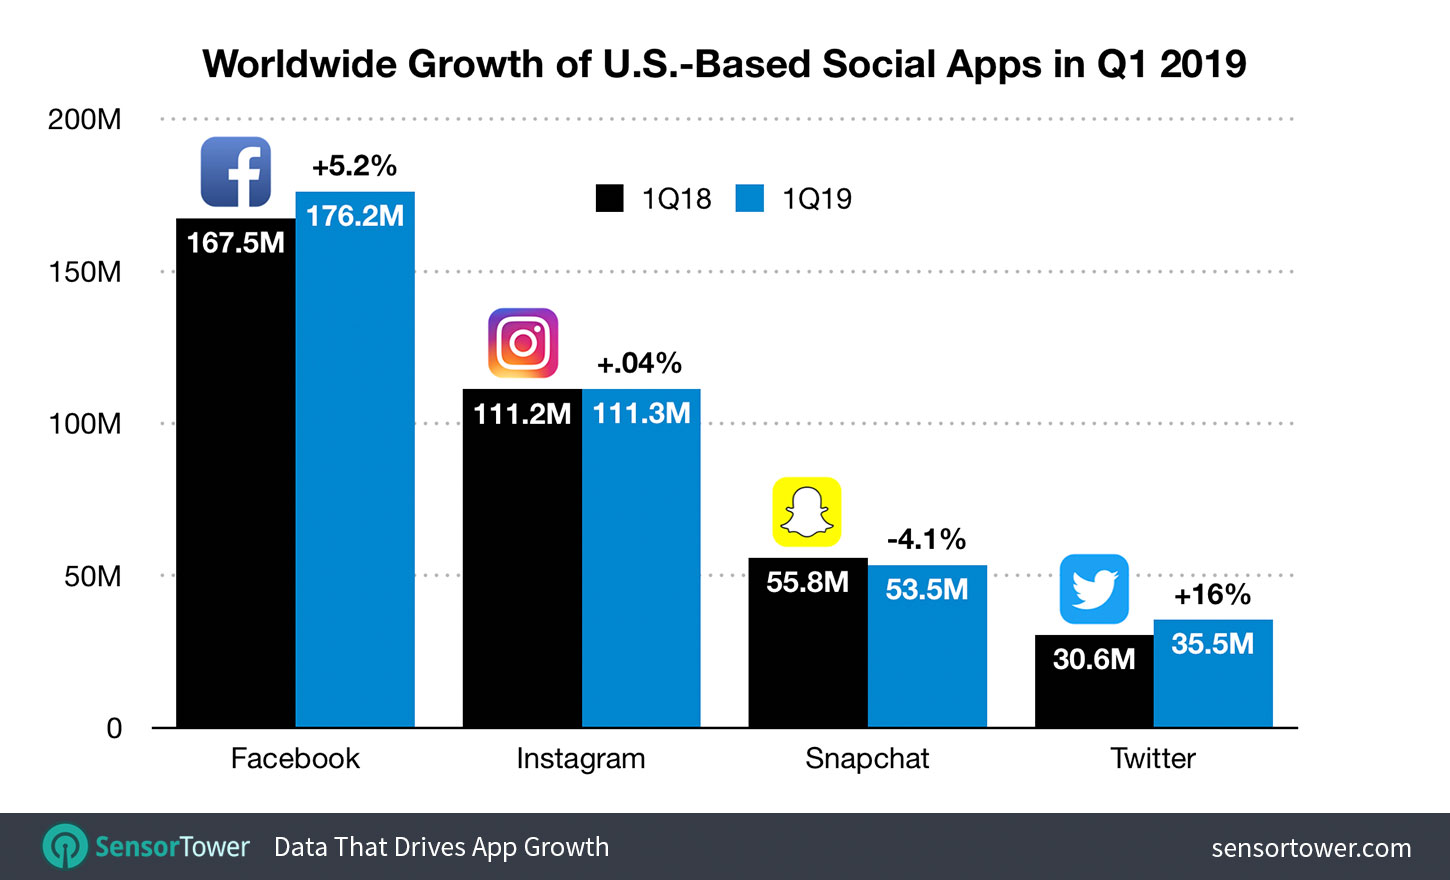 Twitter Grew More Than Facebook, Instagram, and Snapchat During Q1